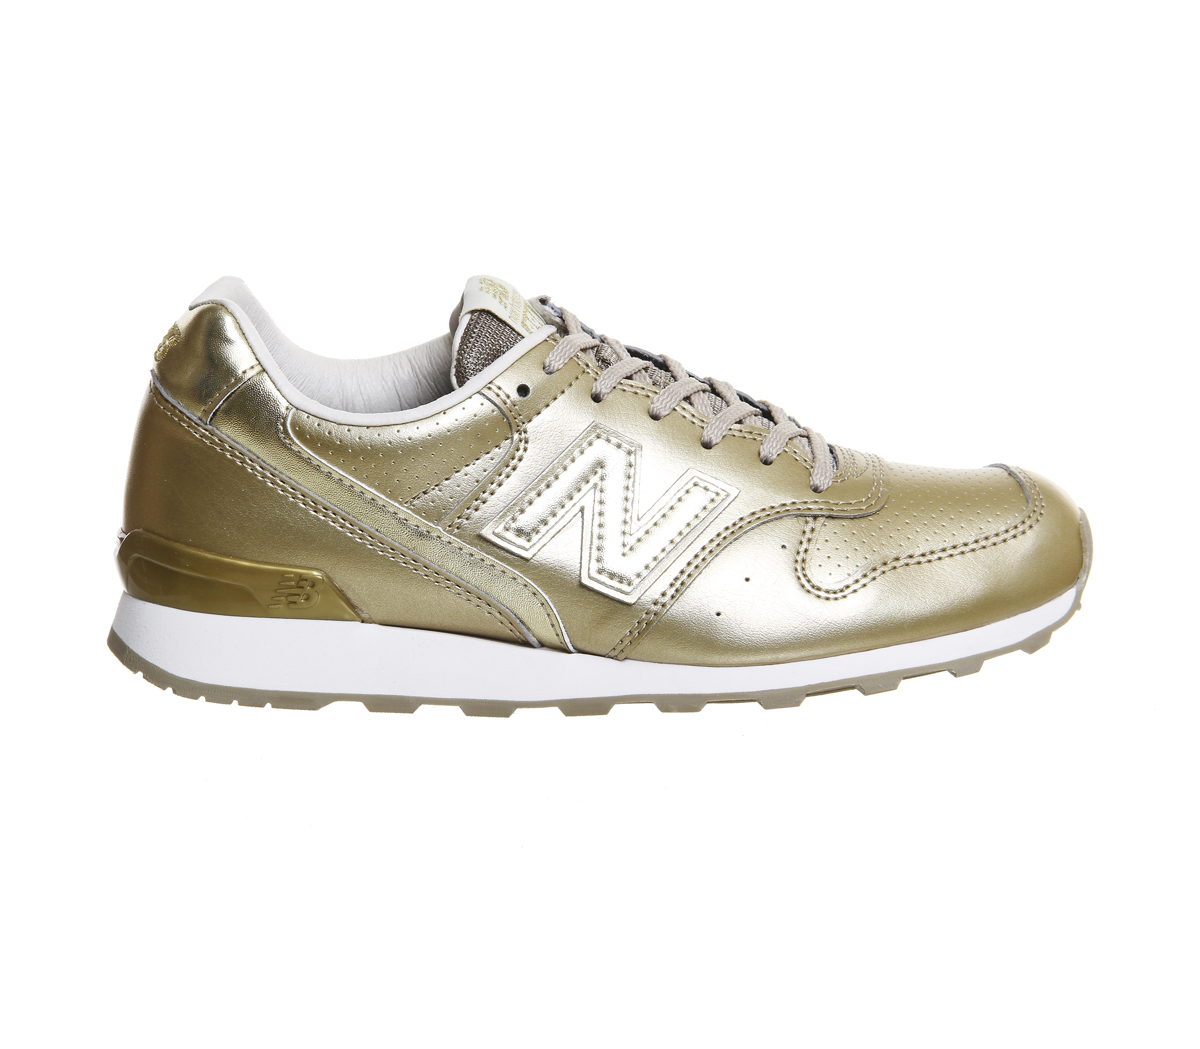 new balance 996 gold mono trainers shoes ebay. Black Bedroom Furniture Sets. Home Design Ideas